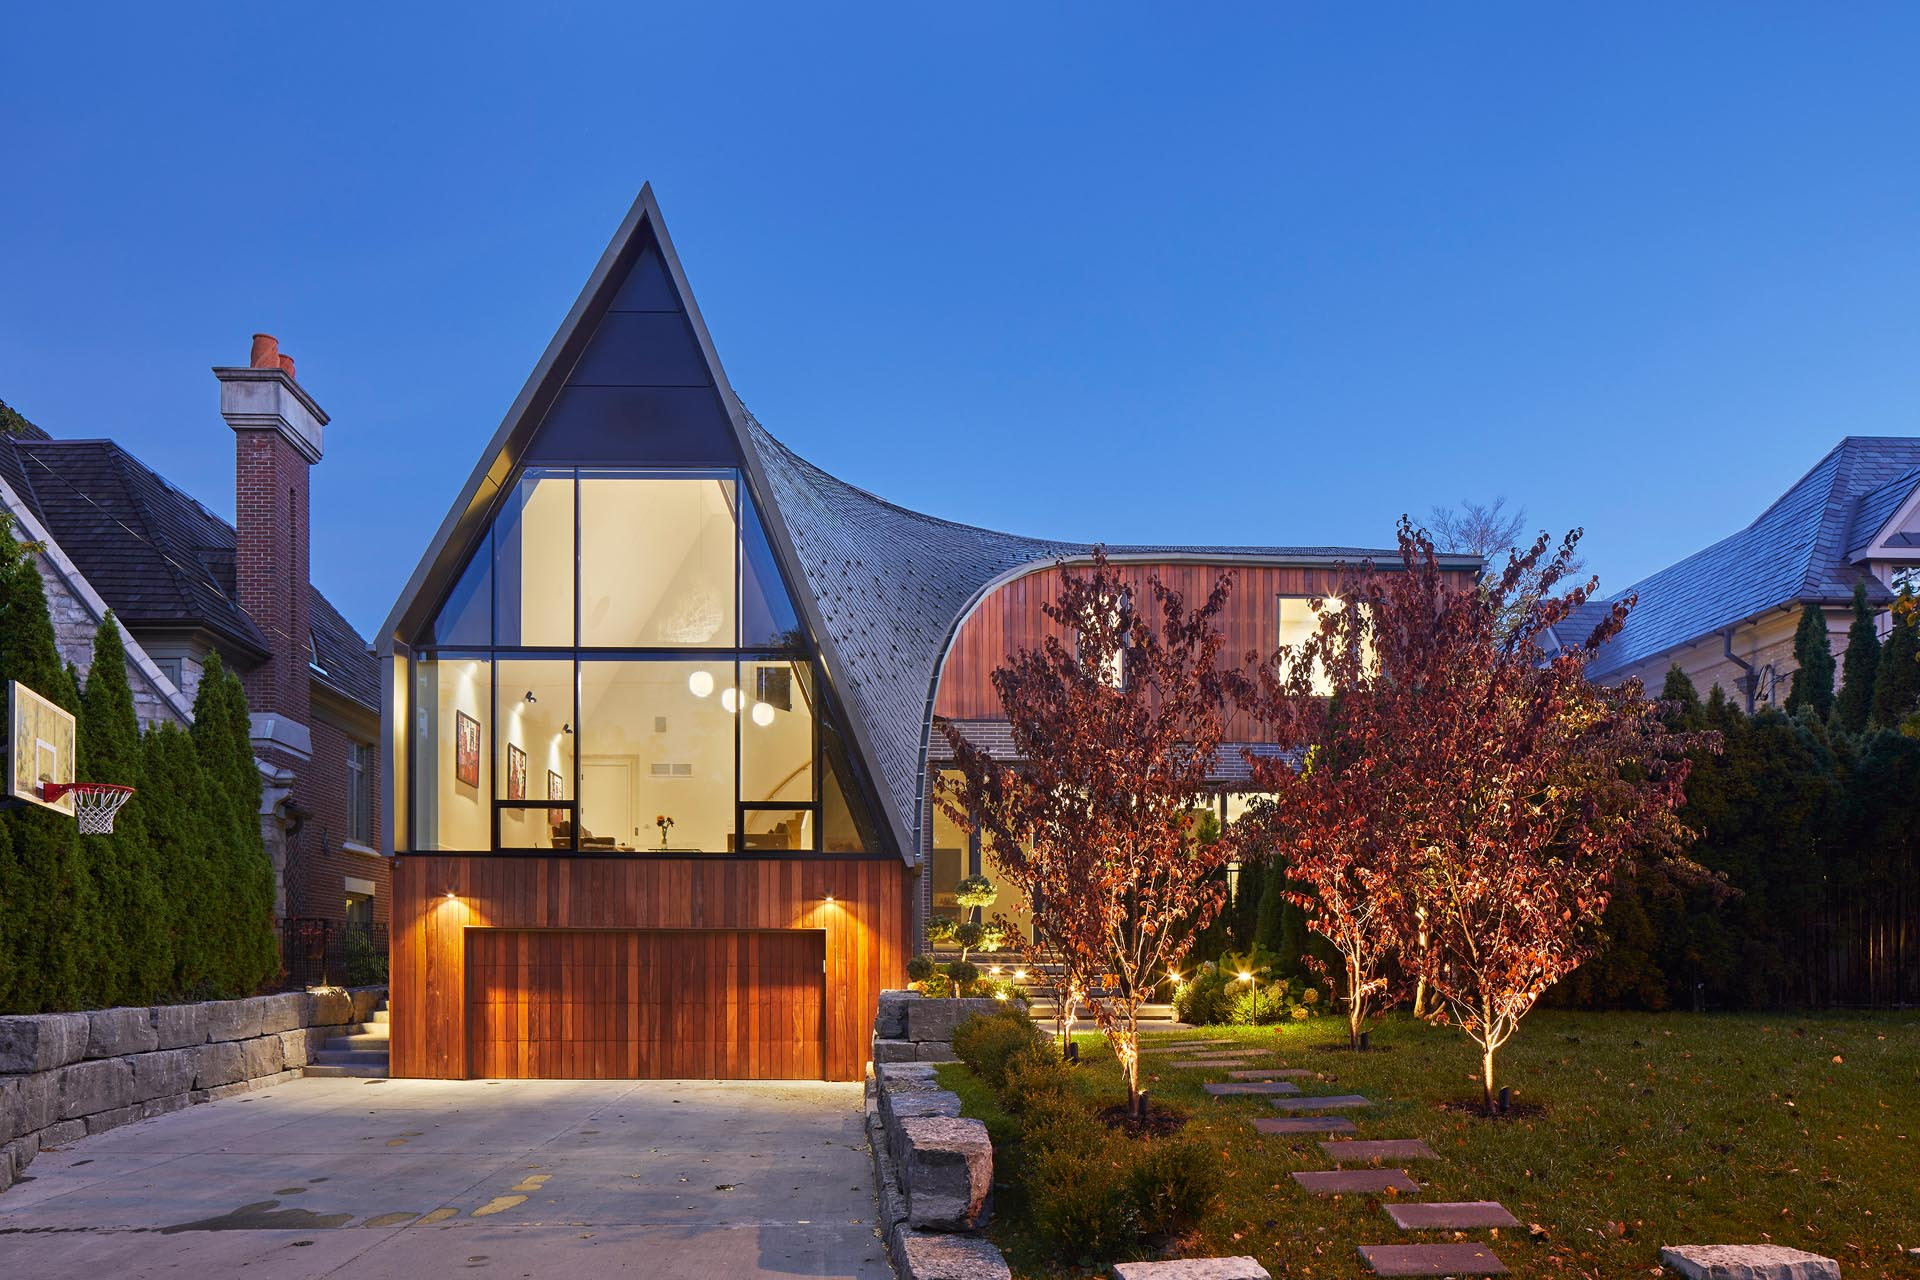 A modern home with a curved roof, an L-shaped design, and a A-frame accent.